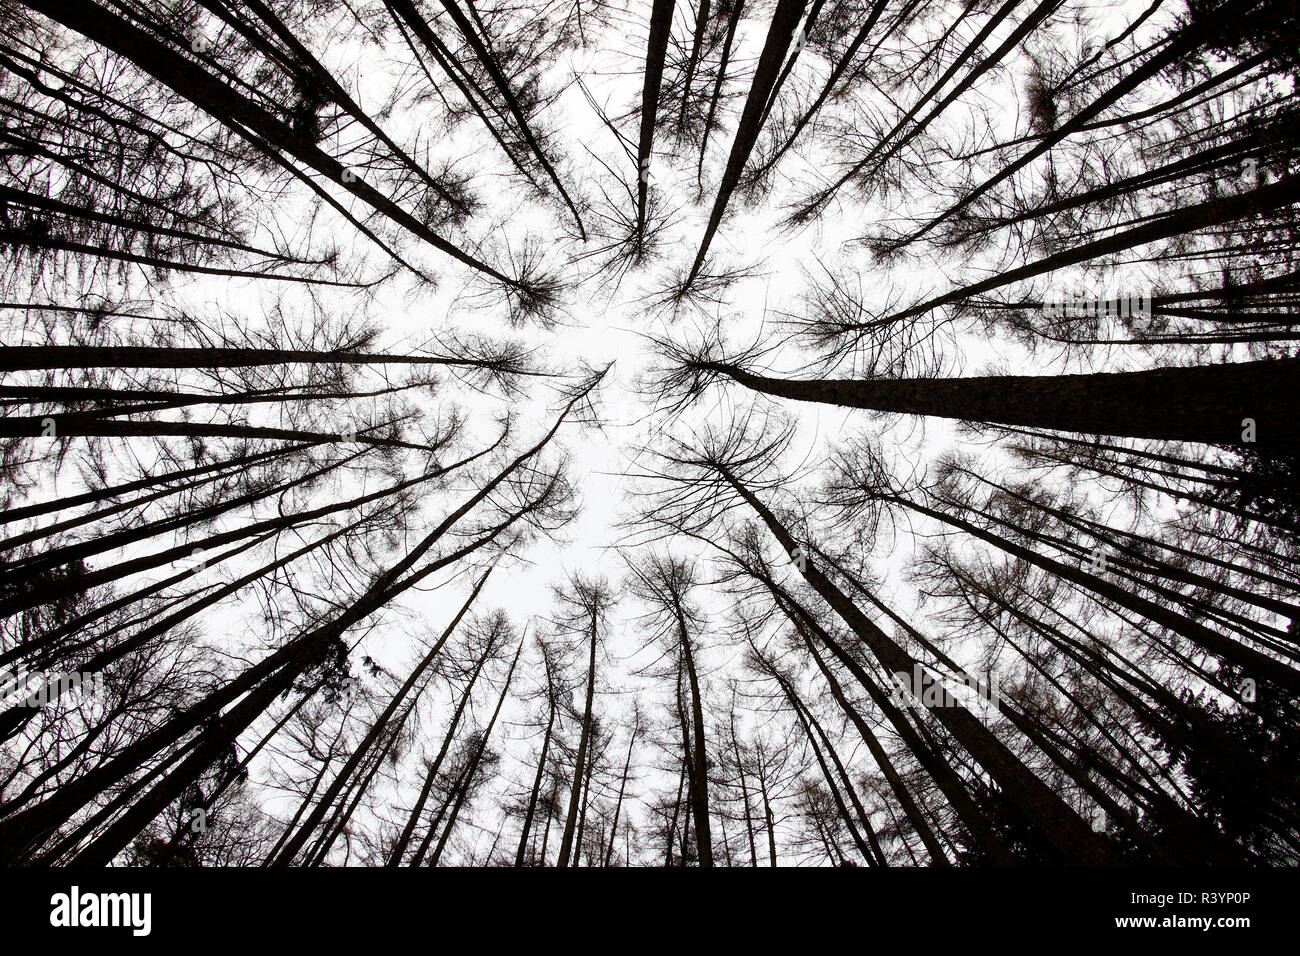 Forest View From Below - Stock Image